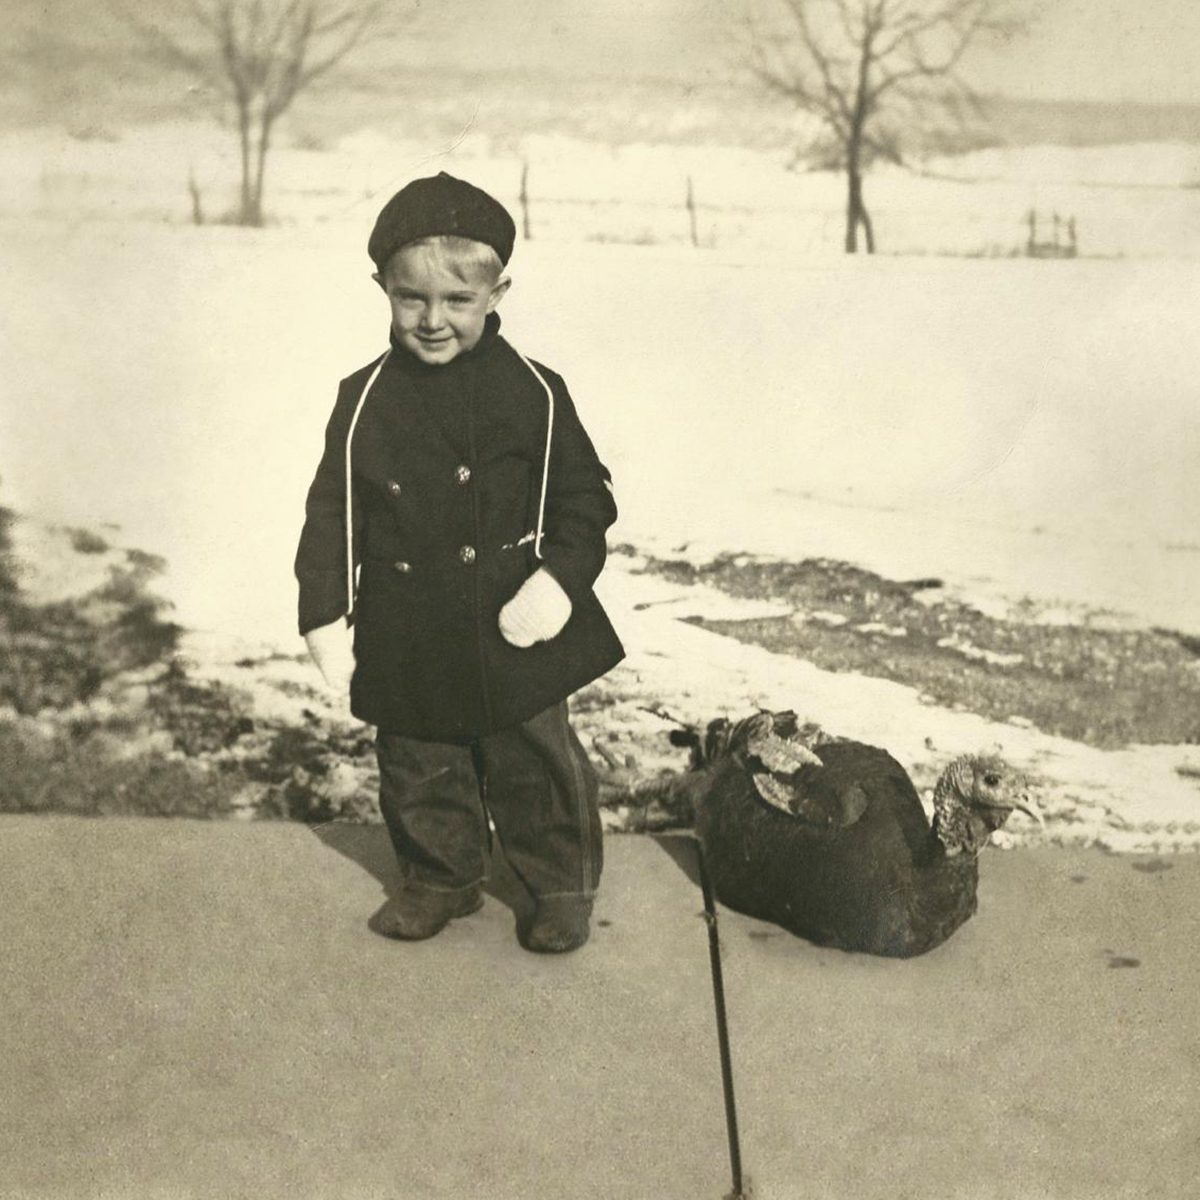 little boy froom the 1930s standing on snowy sidewalk next to a turkey